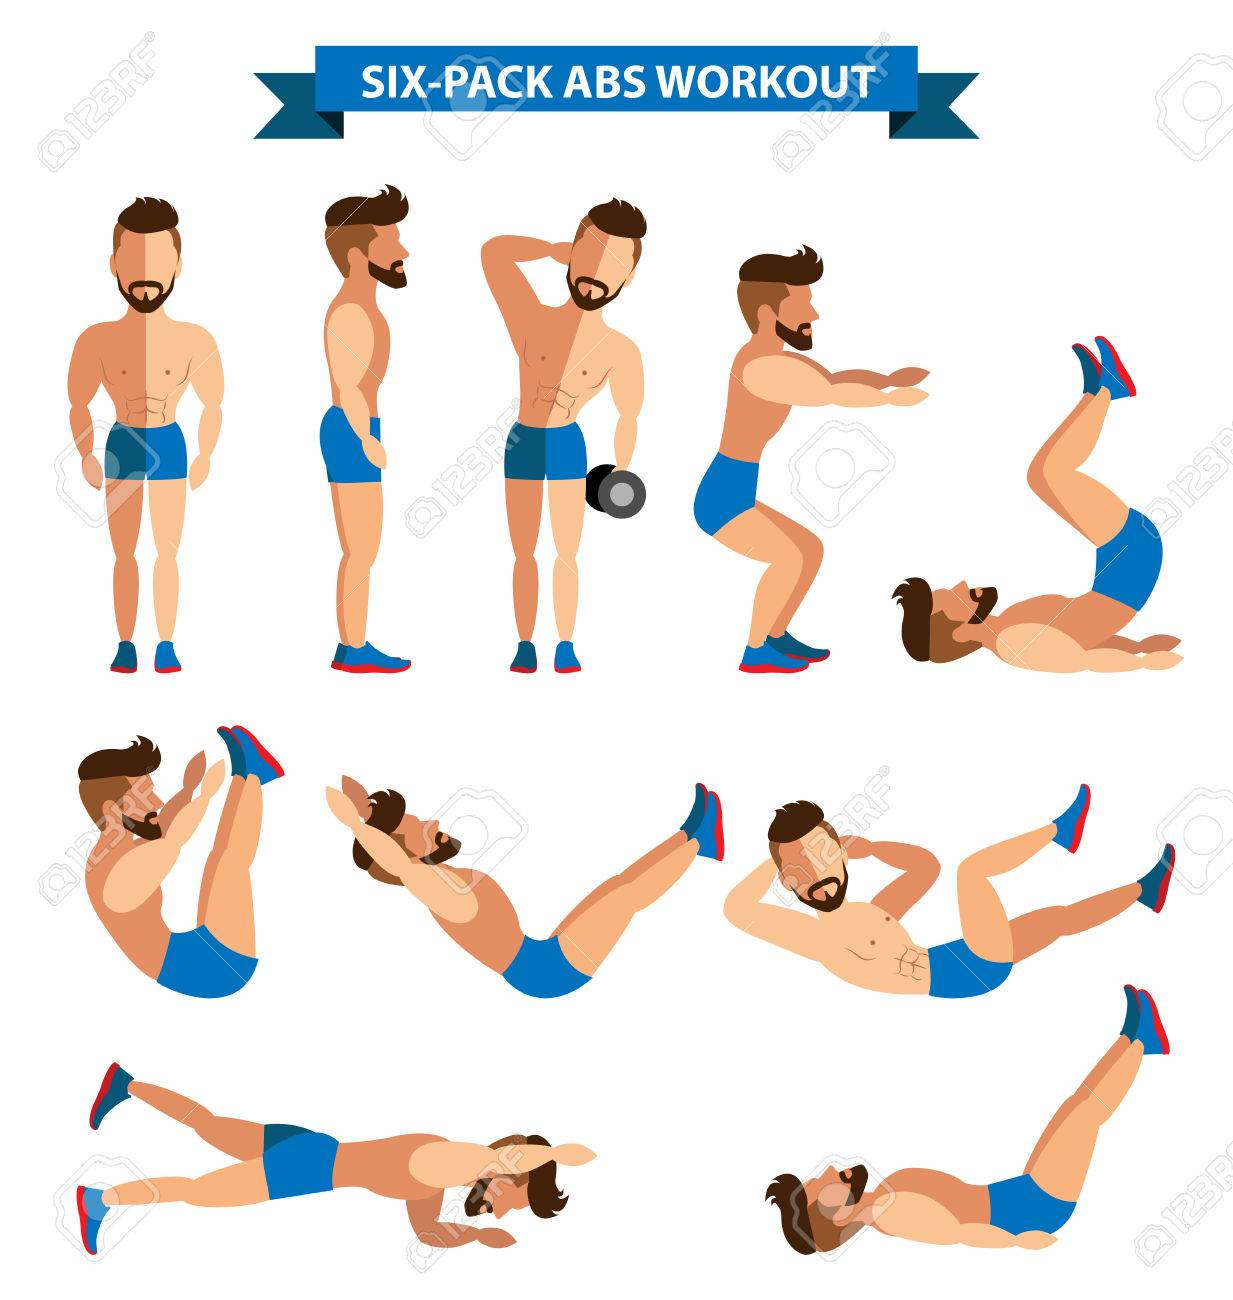 Six Pack Abs Workout For Men Exereise At Home Stock Vector